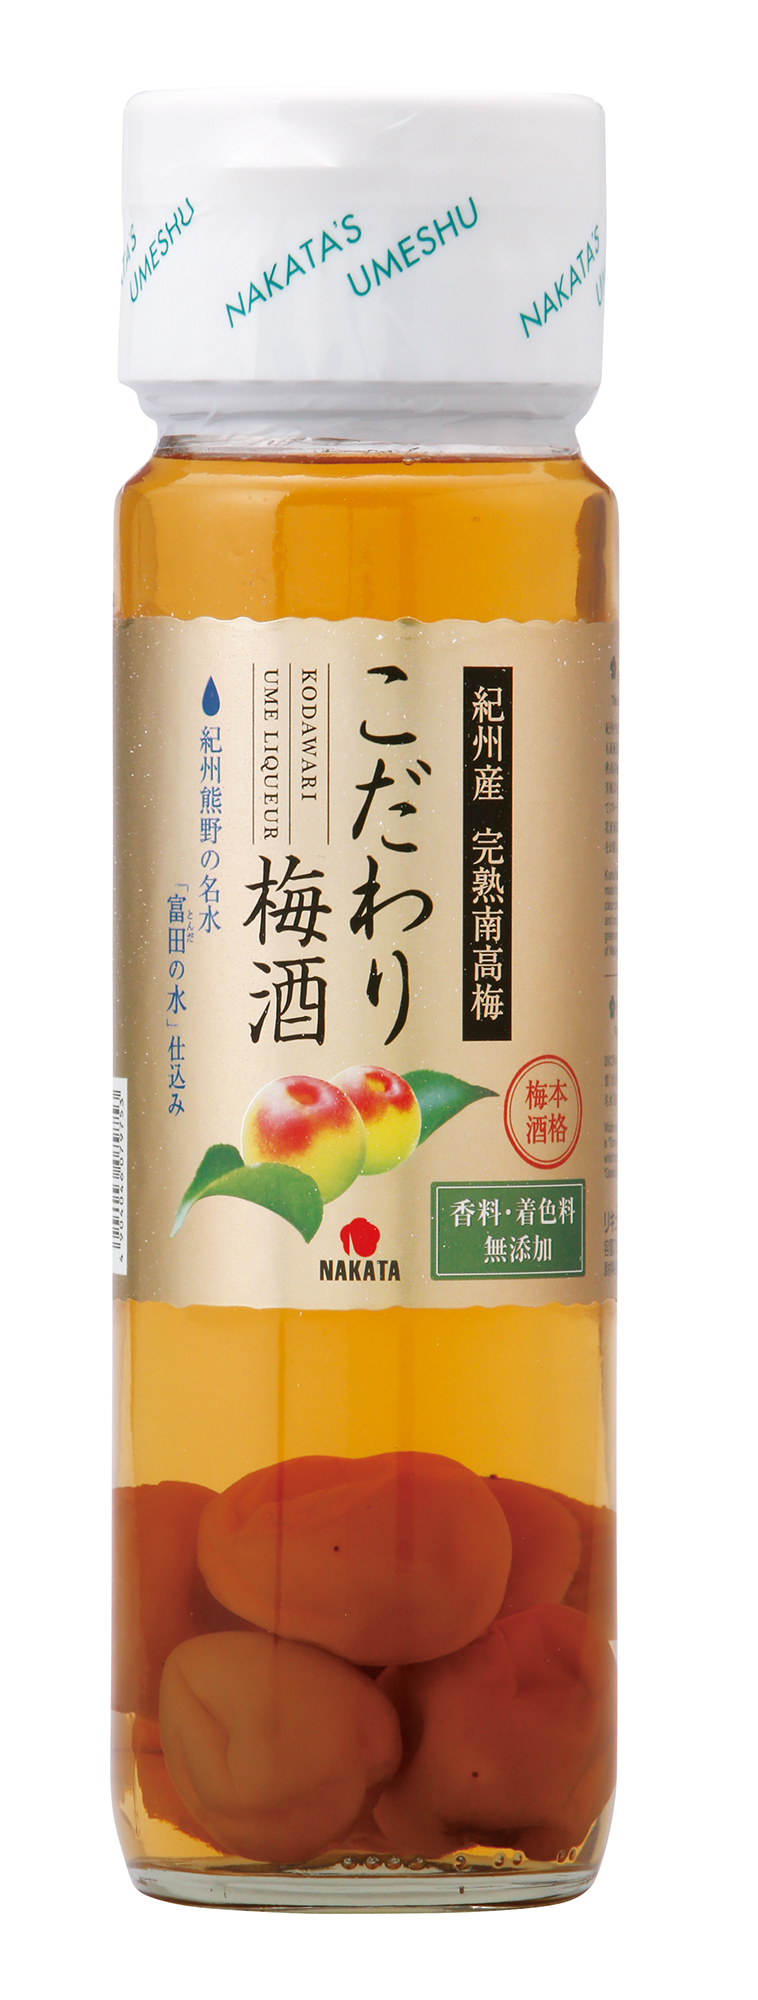 Umeshu with Whole Ume 12%